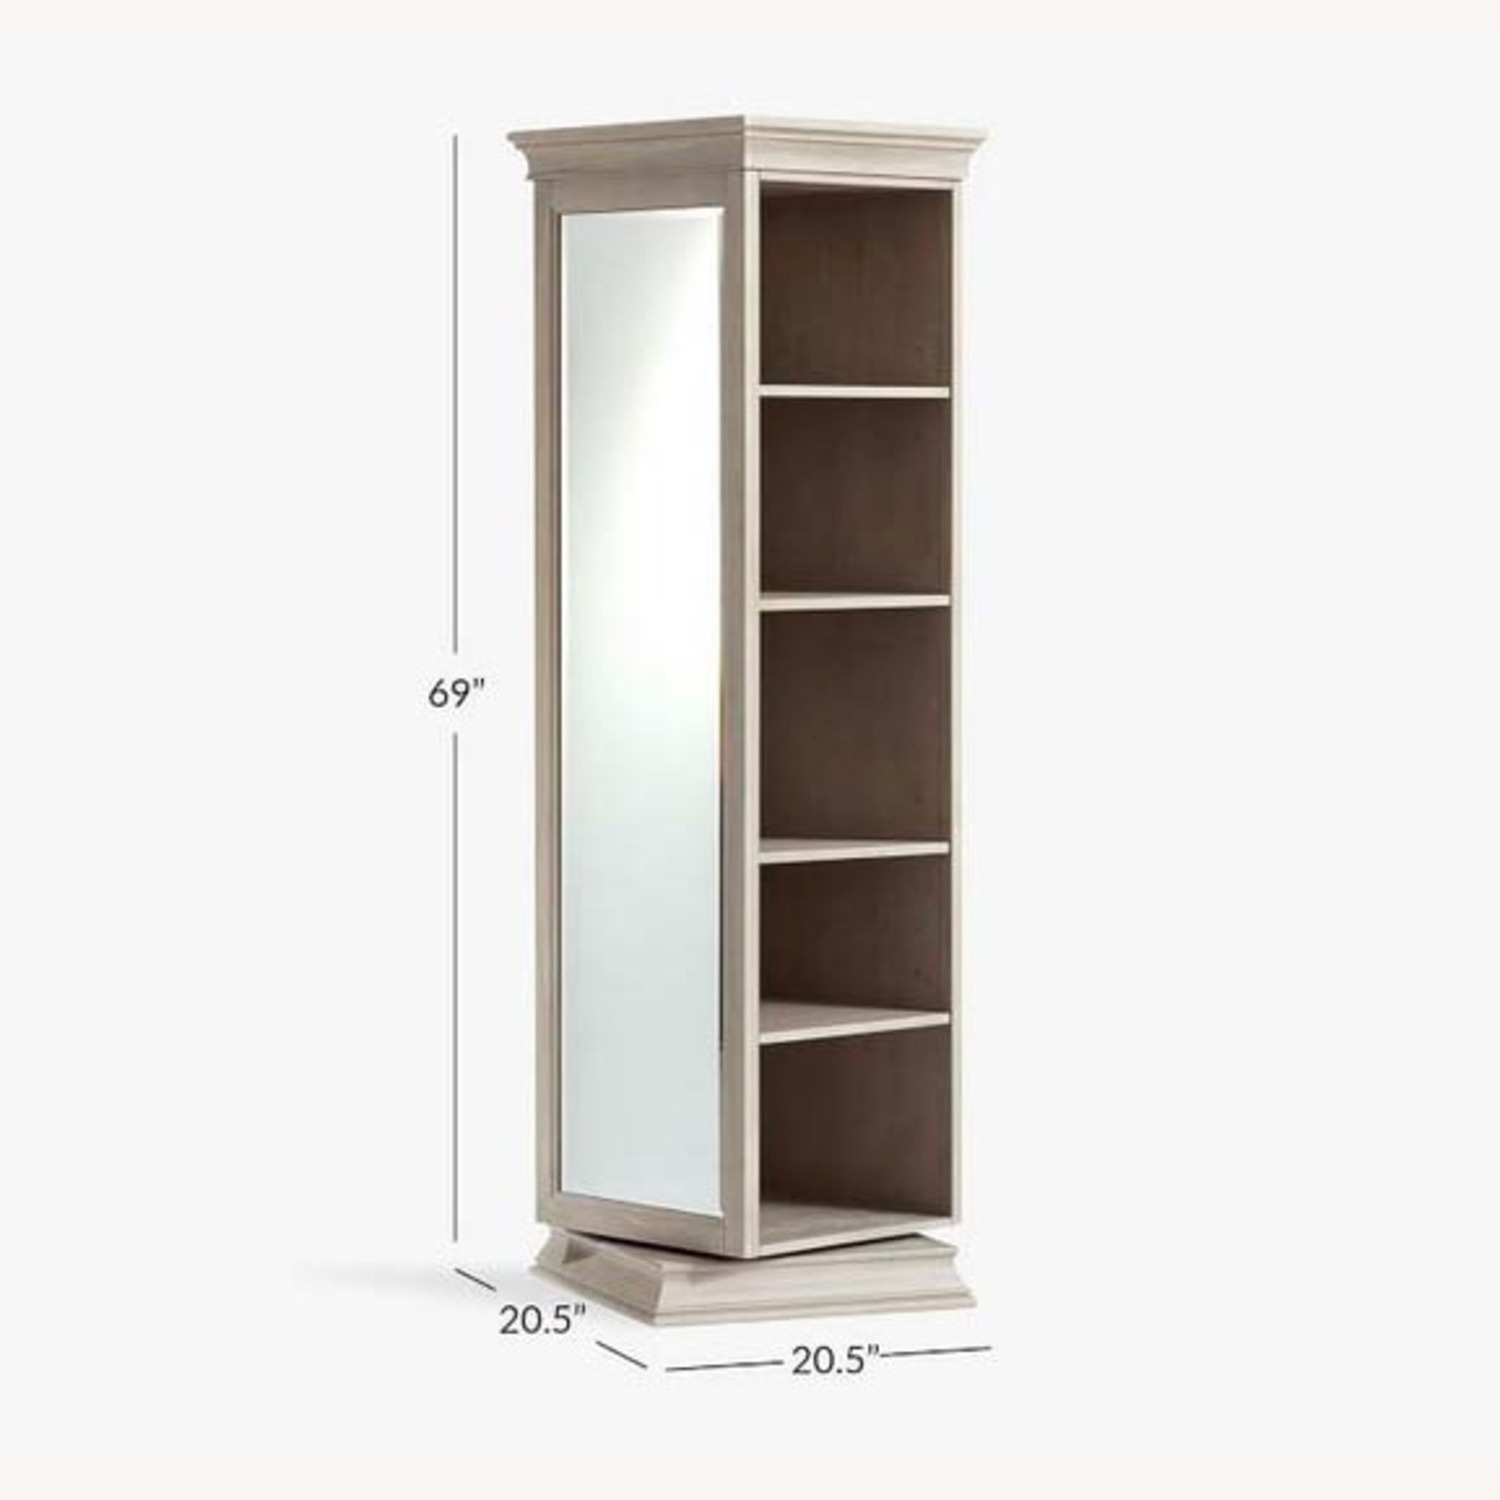 Pottery Barn Display-It Rotating Bookcase w/Mirror - image-3